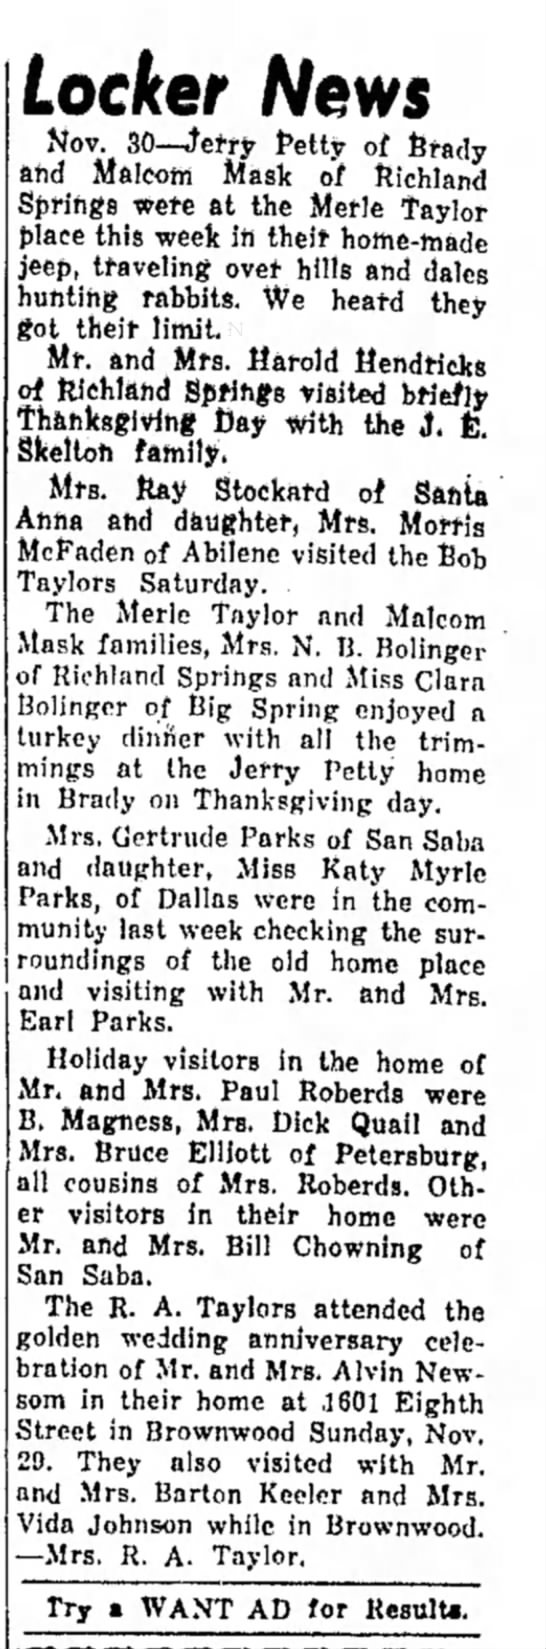 The San Saba Naews and Star 7 Dec 1964 Pg 2 Locker News -